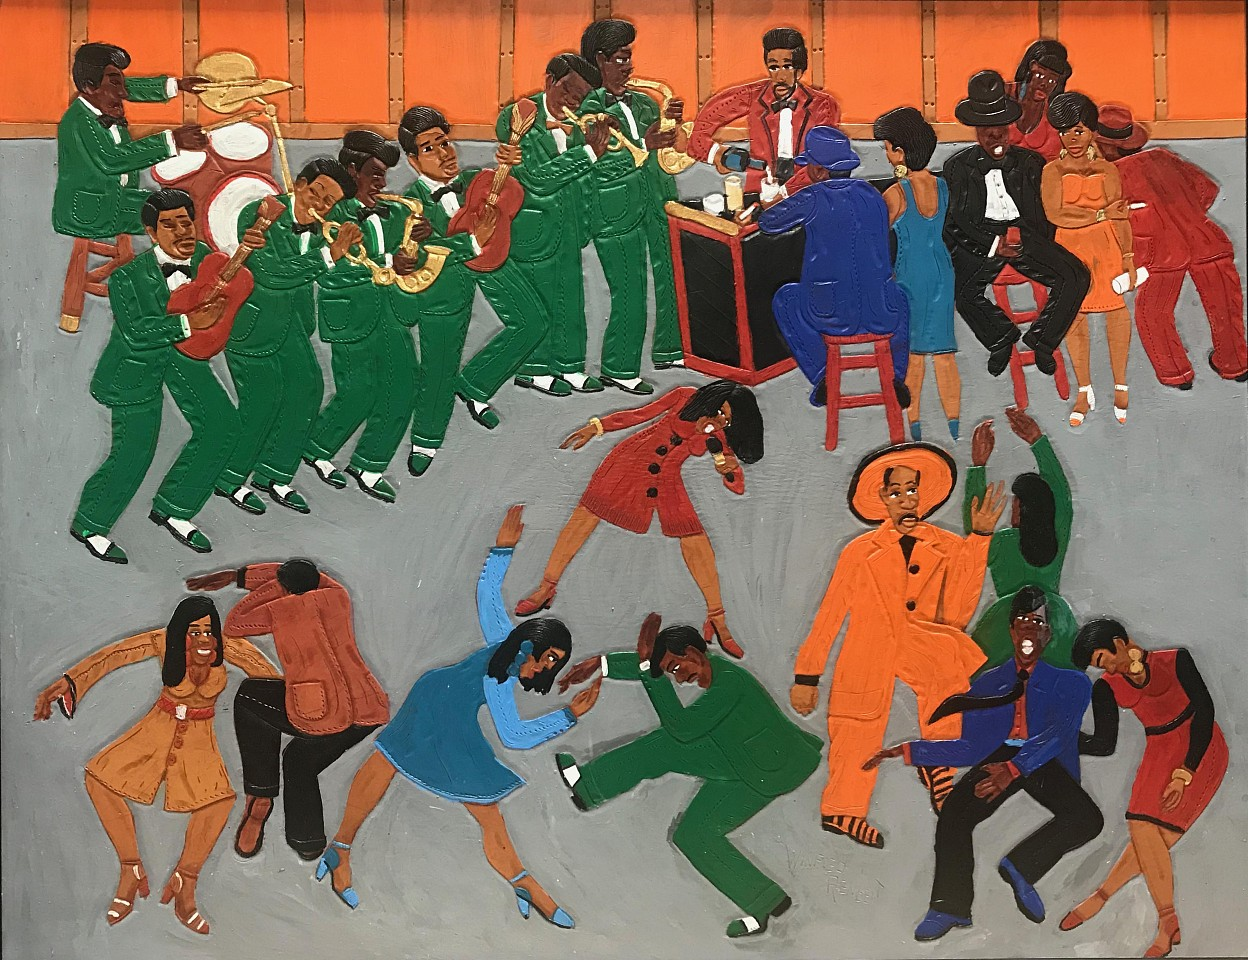 Winfred Rembert ,   Egg: Jazz Dancing  ,  2009     Dye on carved and tooled leather ,  29 1/4 x 35 1/4 in. (74.3 x 89.5 cm)     WR190230